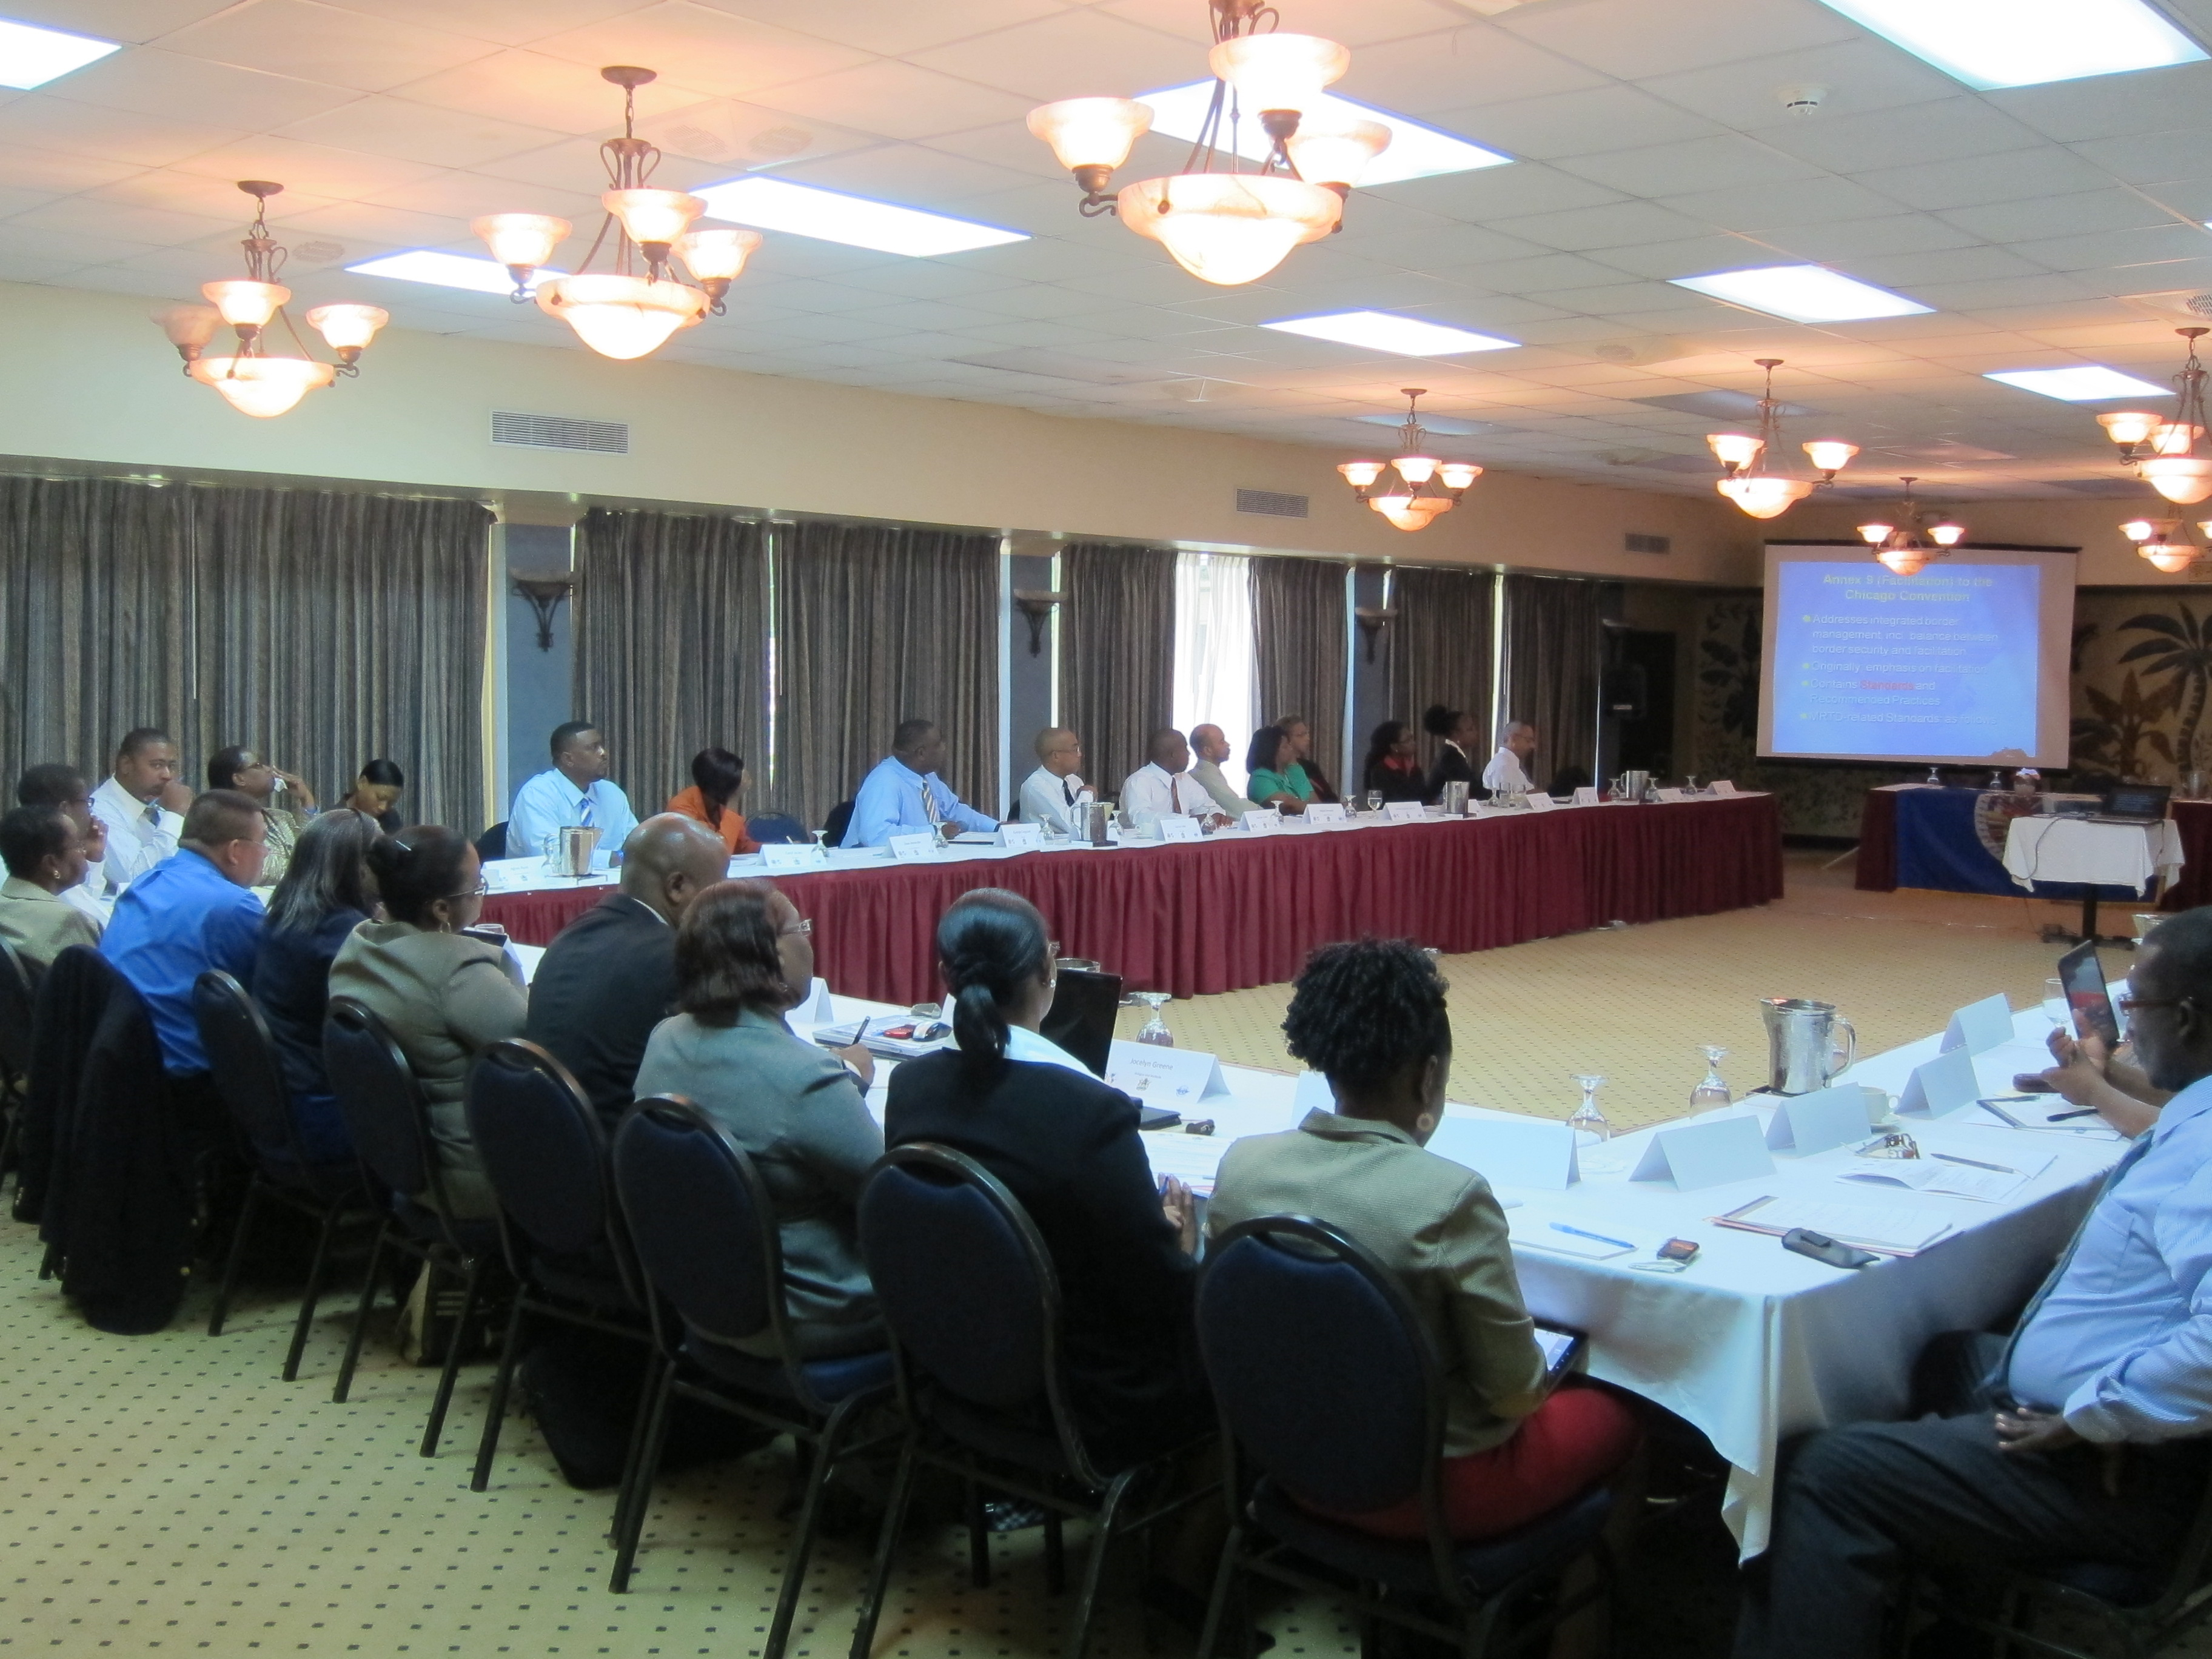 Workshop on Travel Document Security and Identity Management